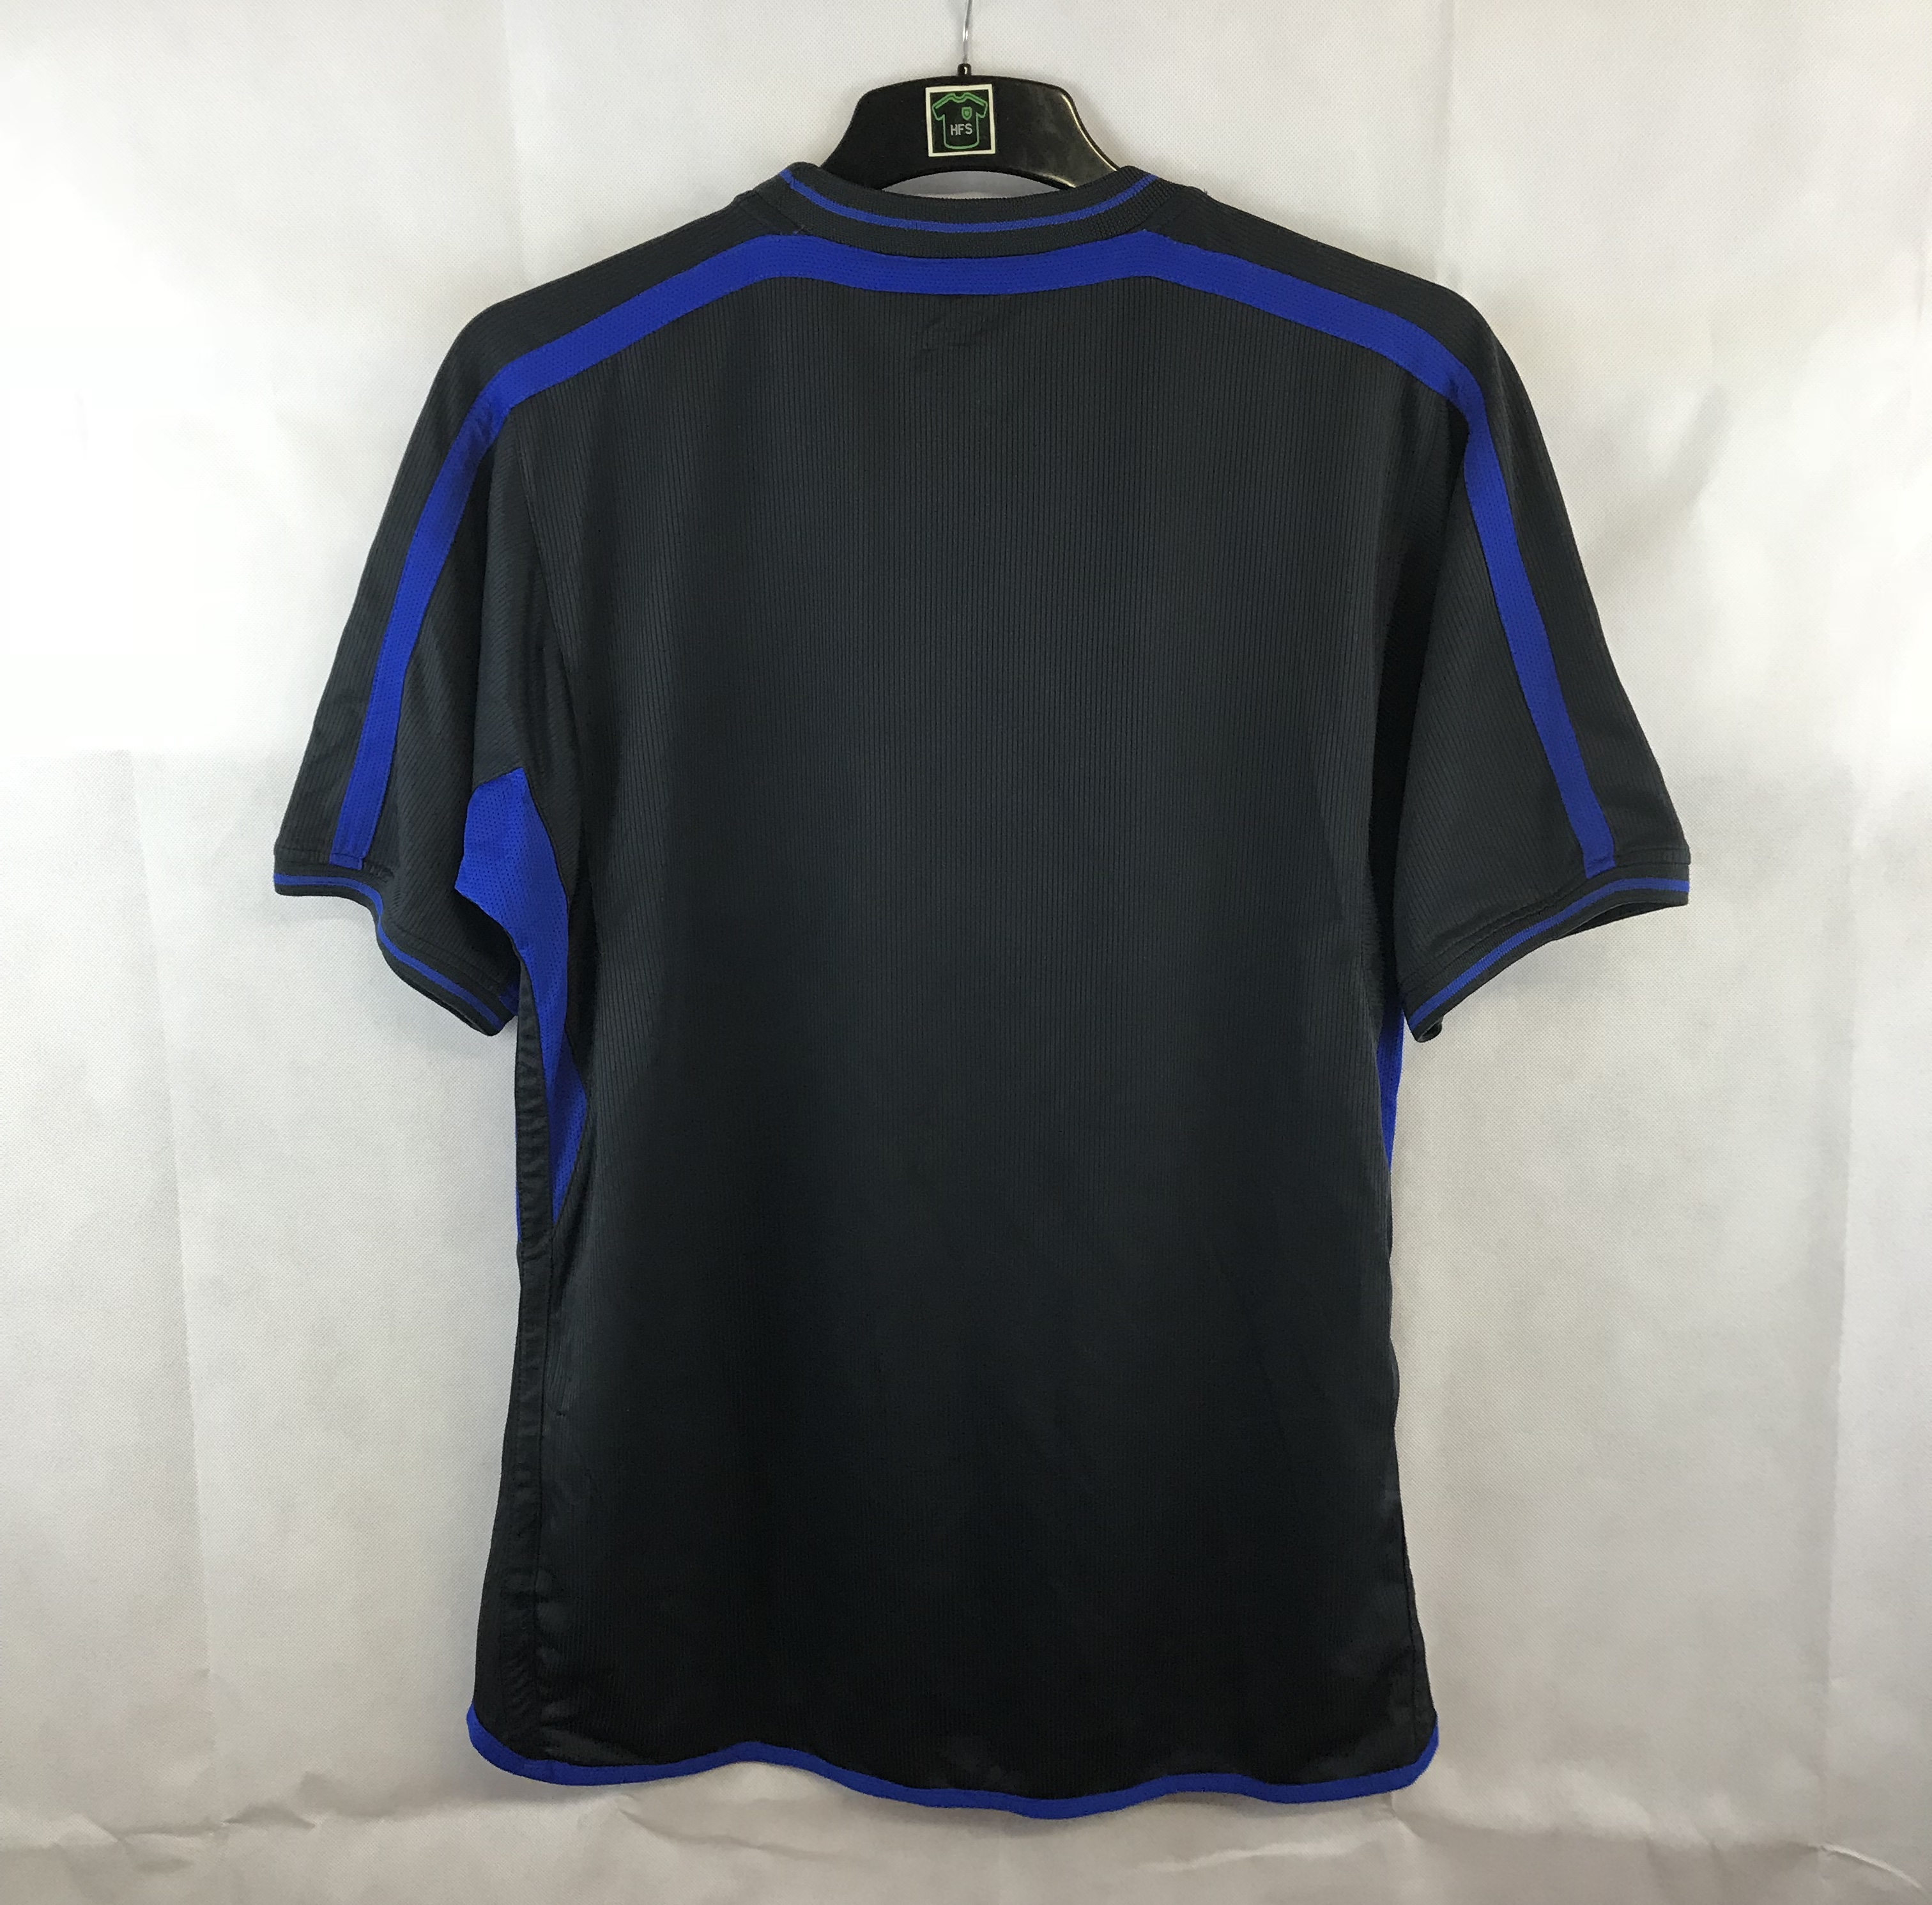 2ba5c9ad612 Chelsea Away Football Shirt 2002 04 Adults Large Umbro – Historic ...